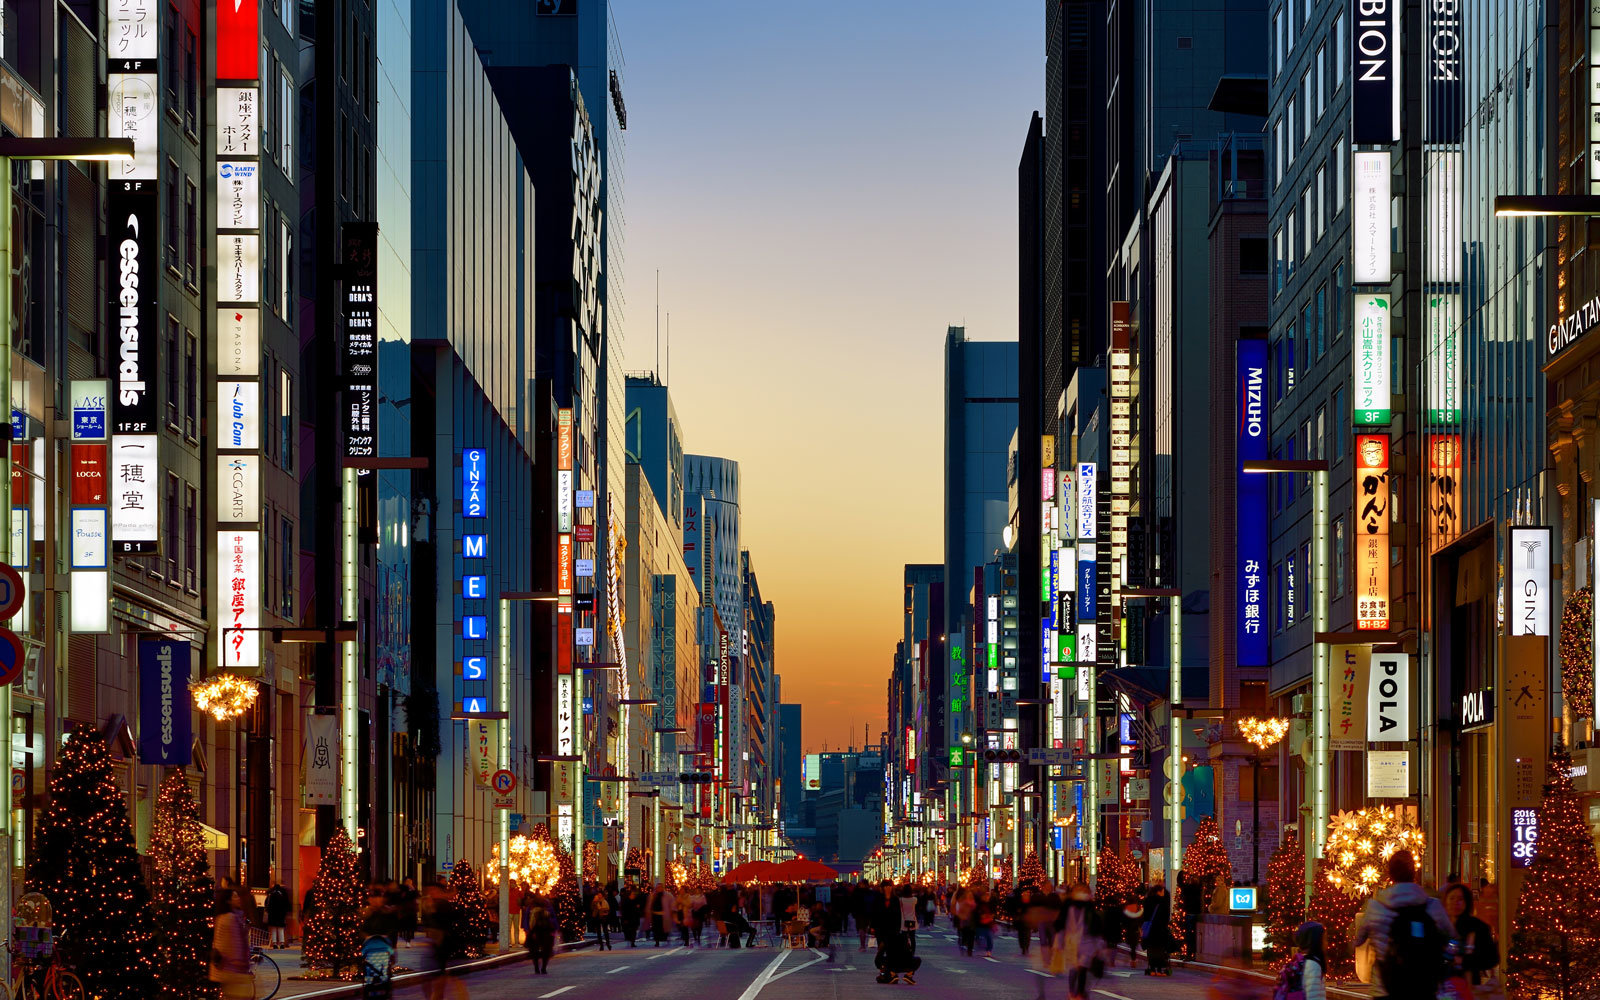 Booking two one-way trips to Tokyo, Japan, can often be cheaper than flying round-trip.